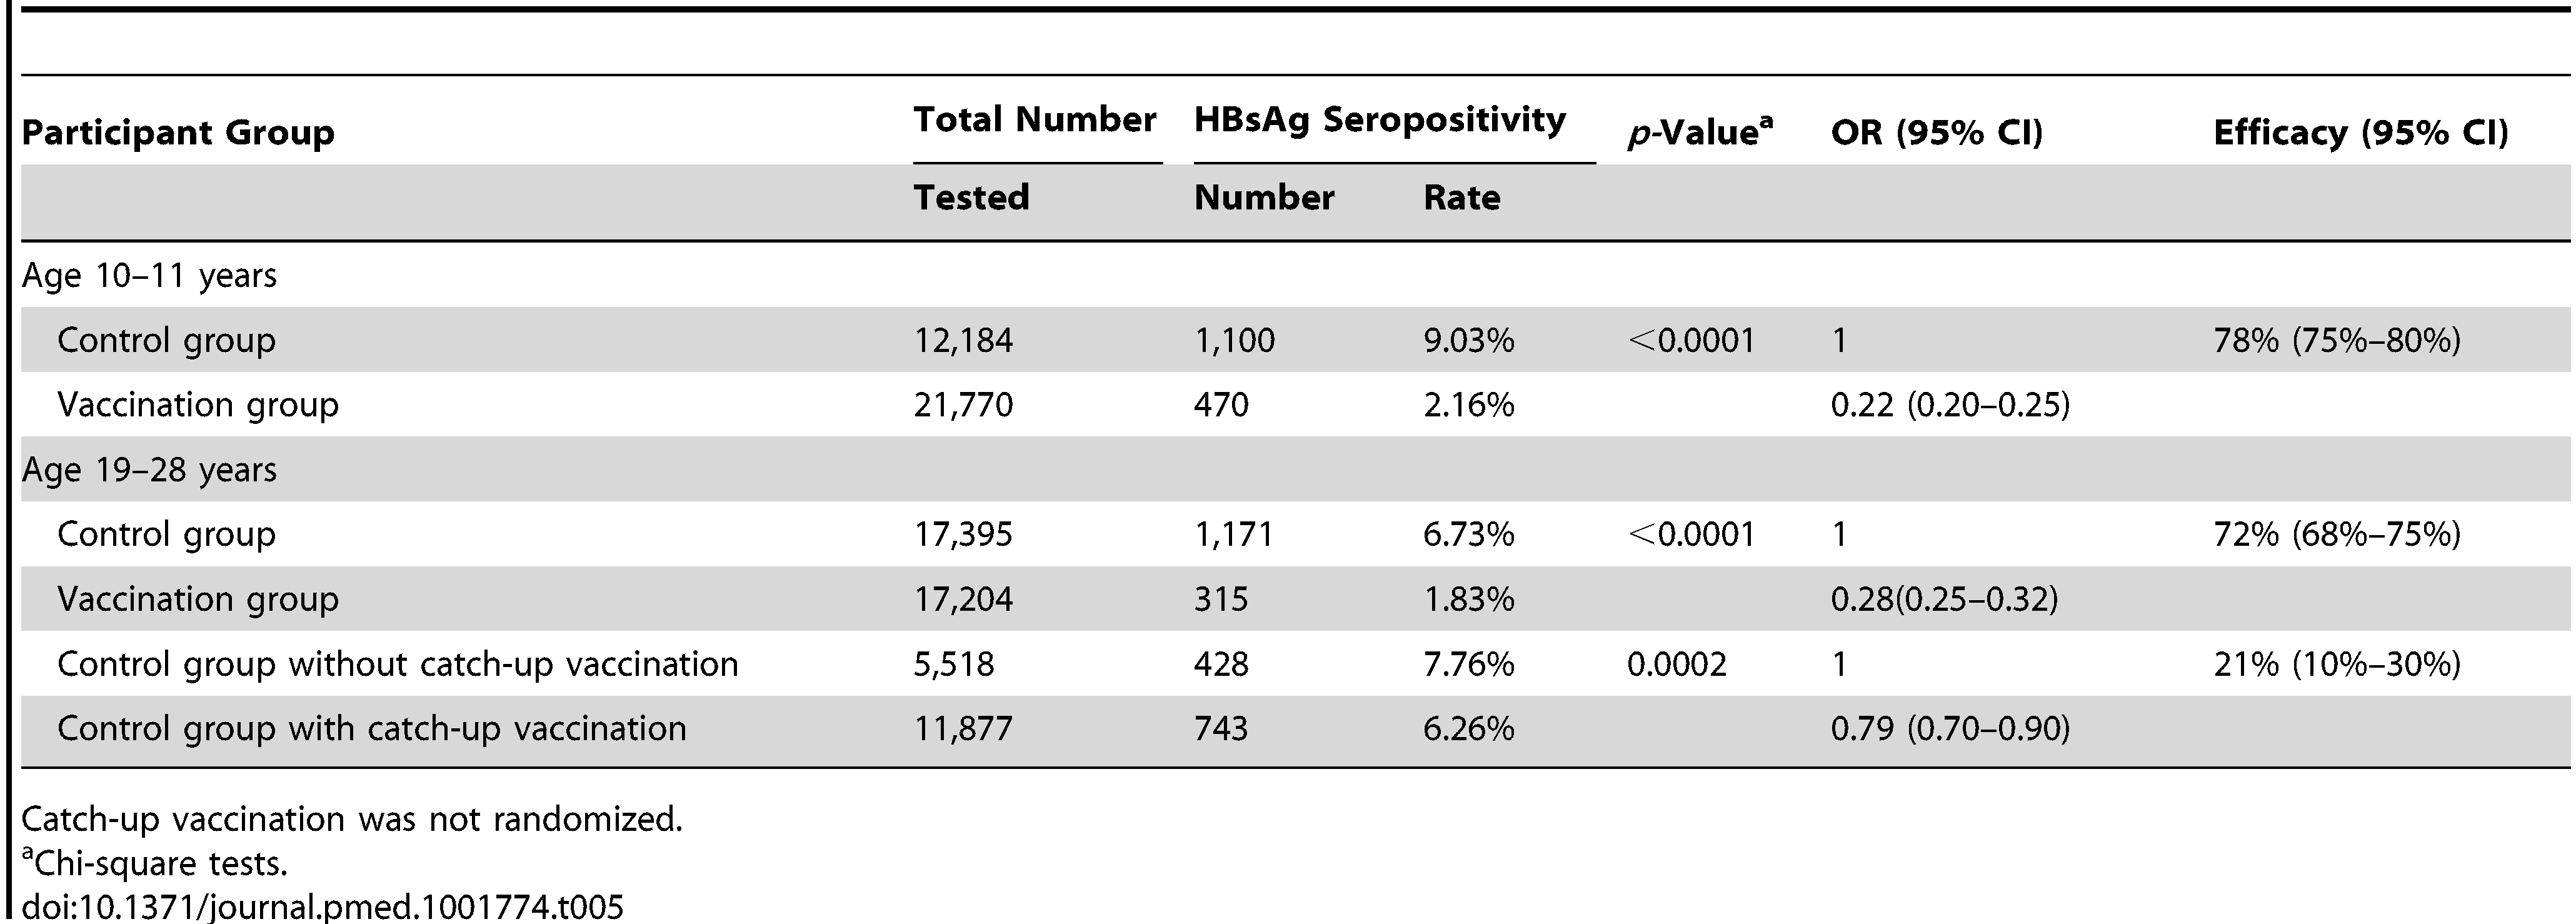 <b>Neonatal and catch-up vaccination (administered at age 10–14 years) on HBsAg seroprevalence.</b>